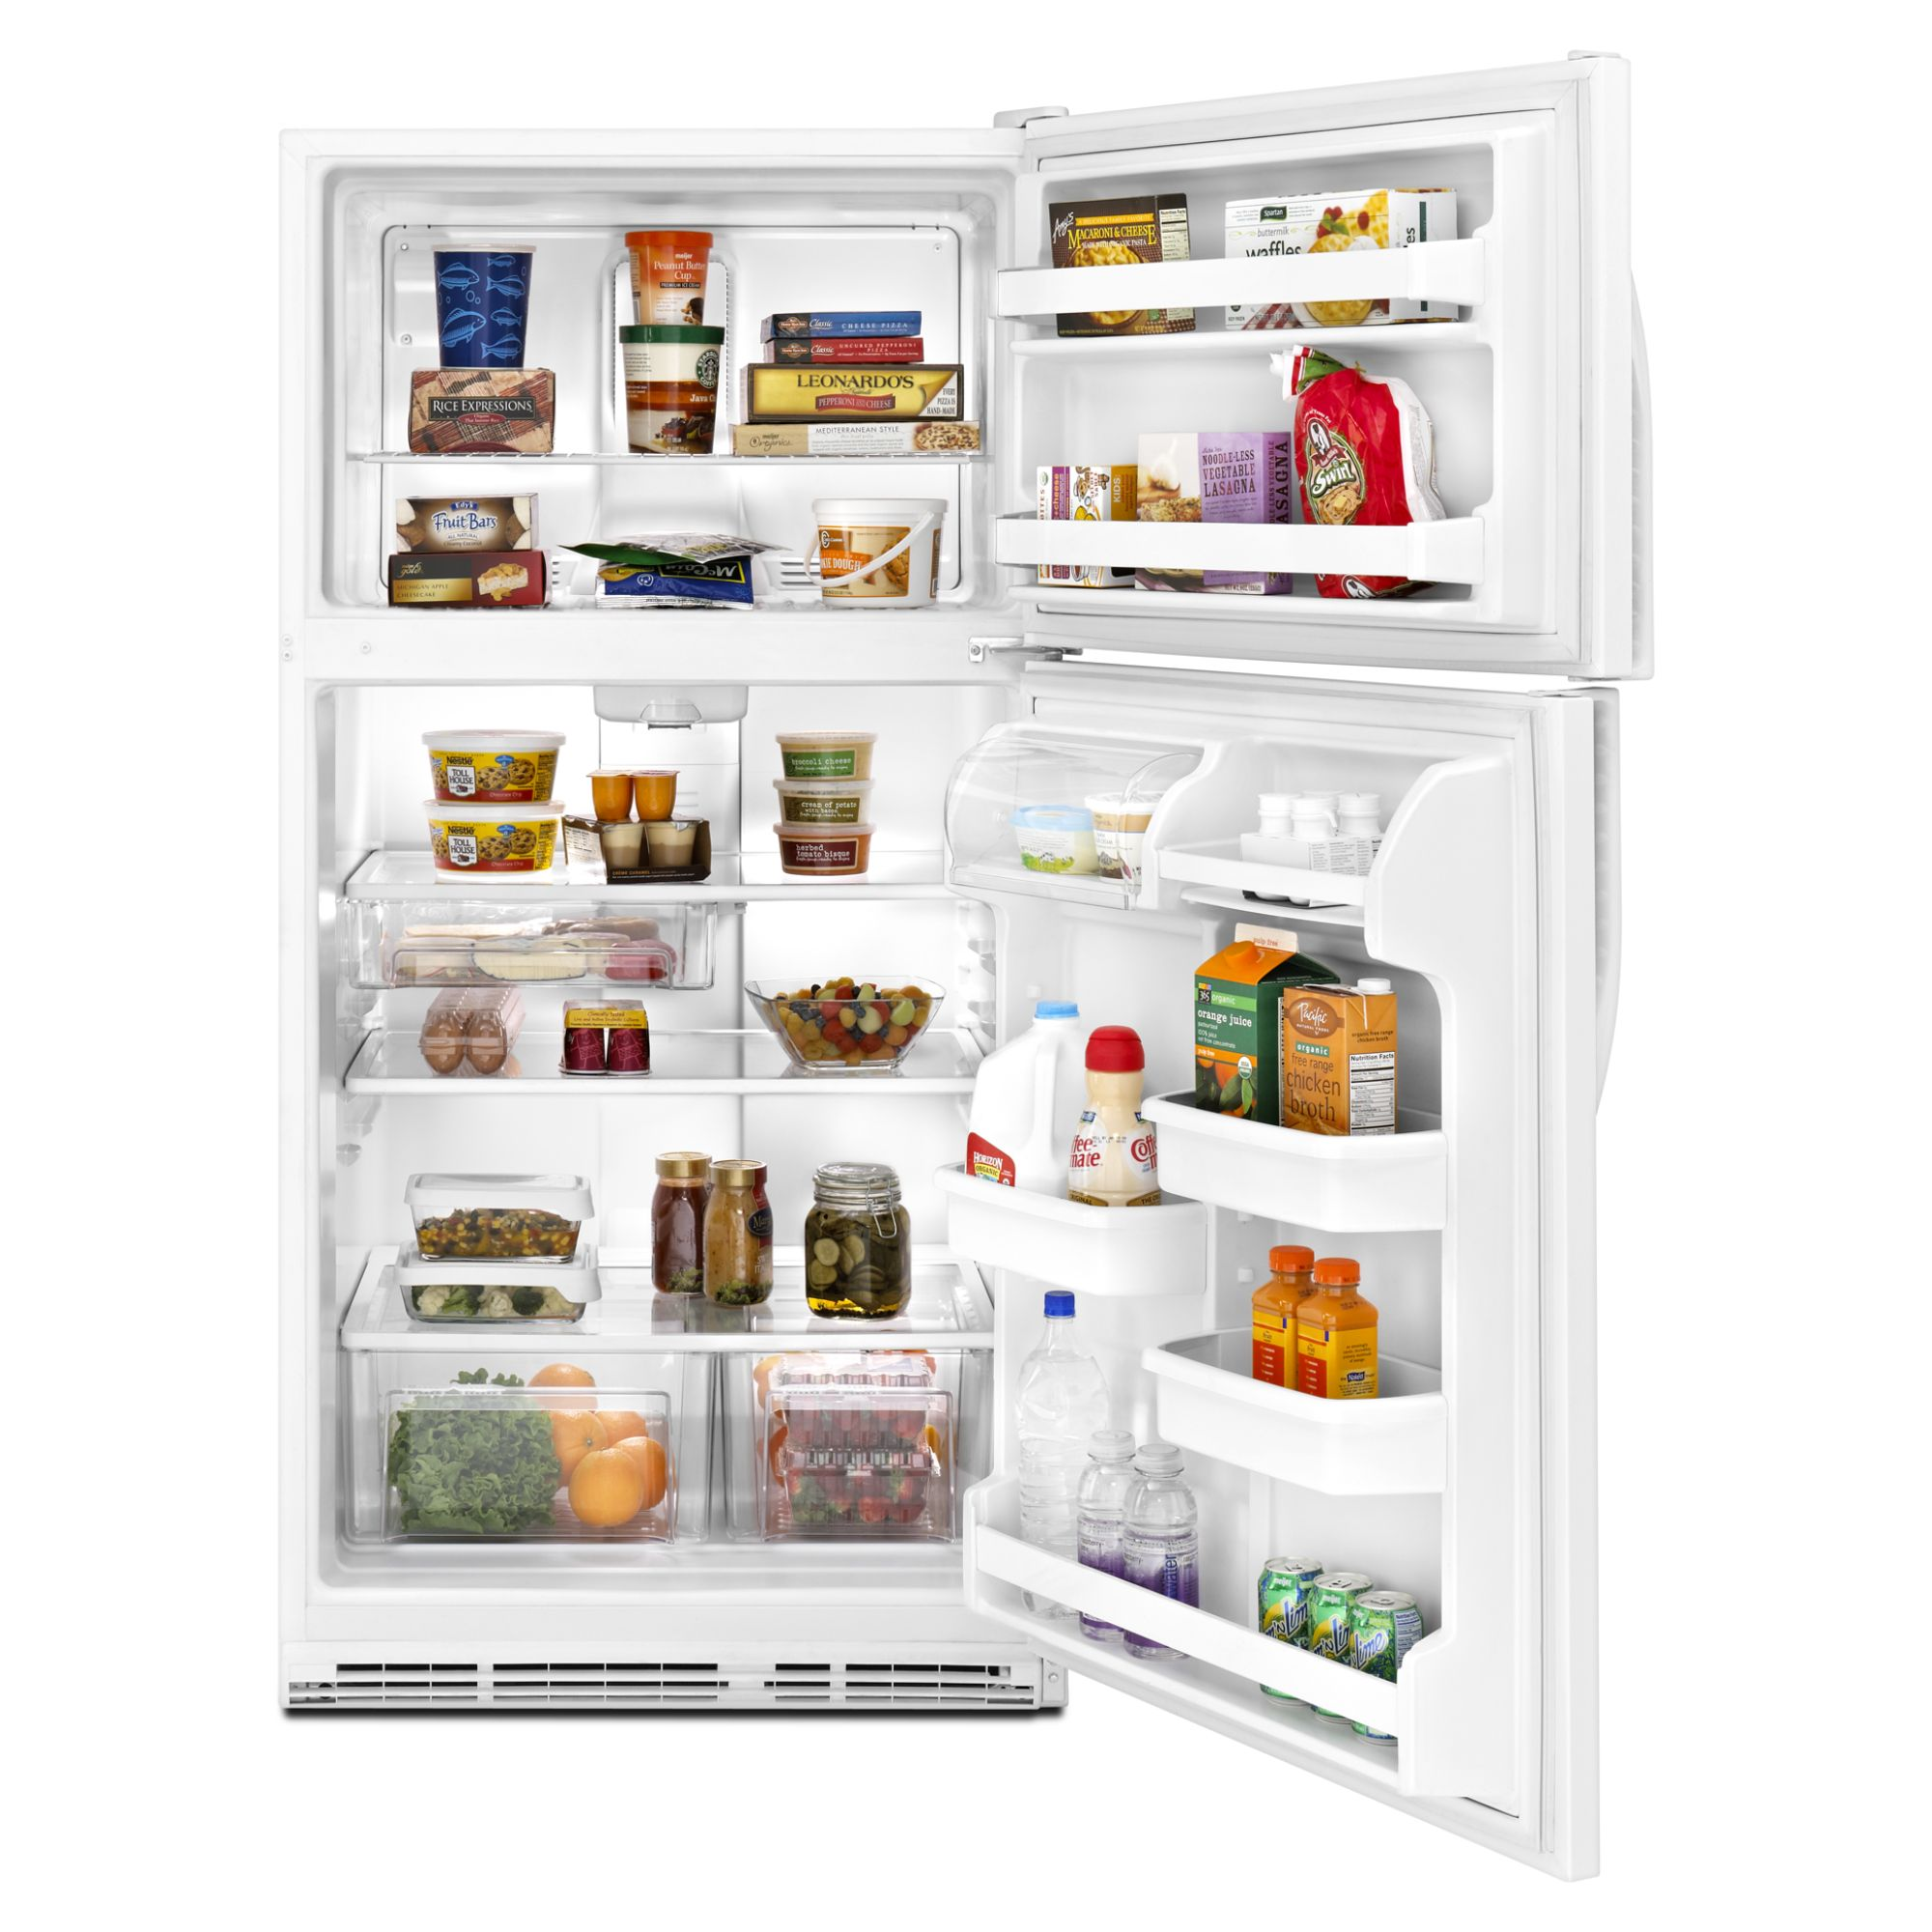 Kenmore 21.0 cu. ft. Top-Freezer Refrigerator, White